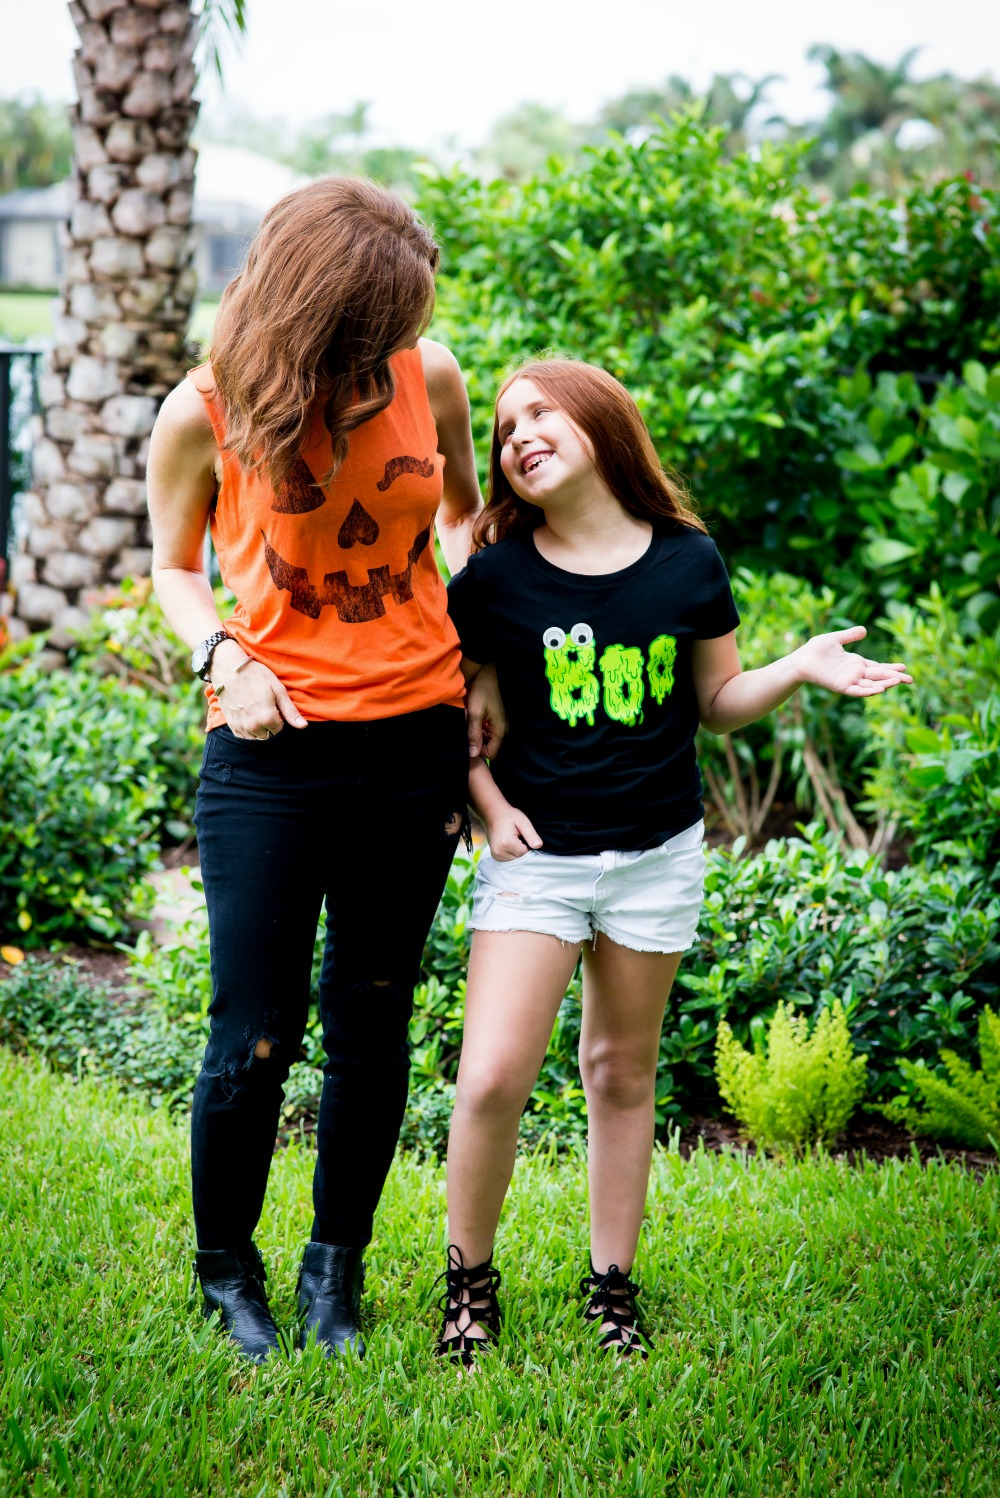 Super cute Halloween tees for you and your little one